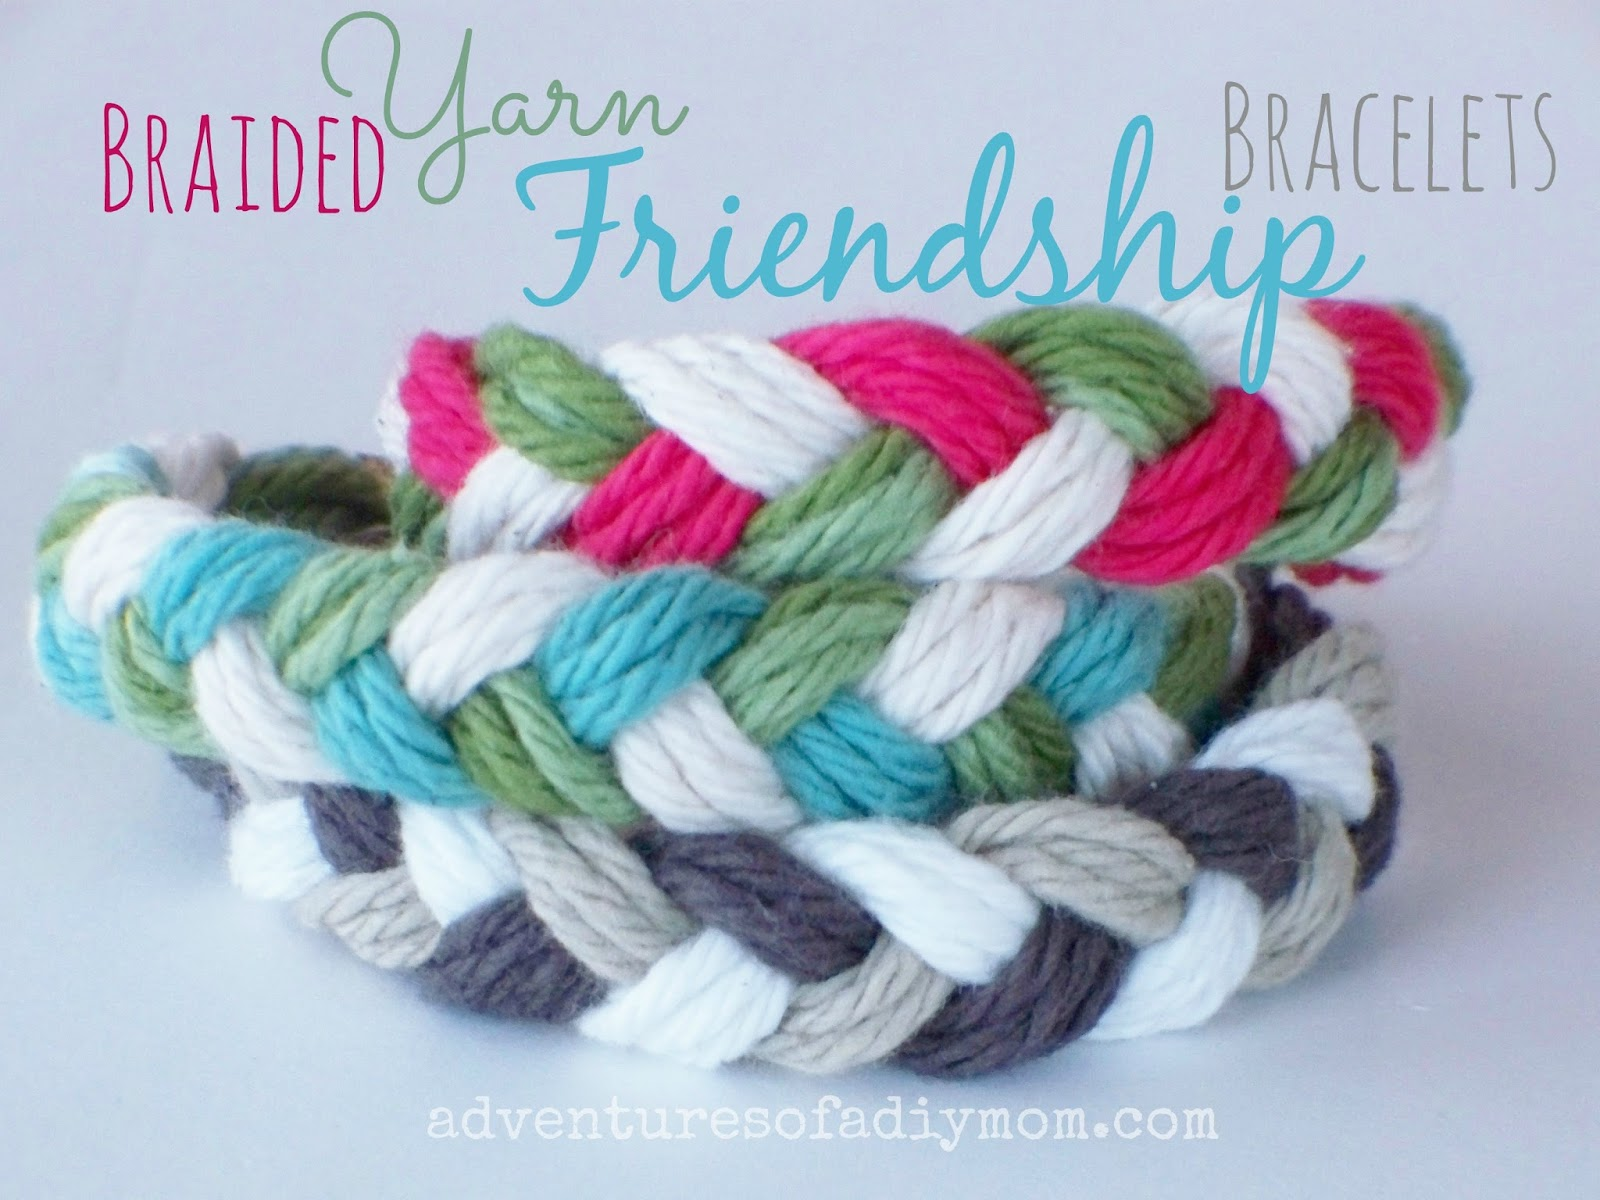 How to Make Braided Yarn Friendship Bracelets